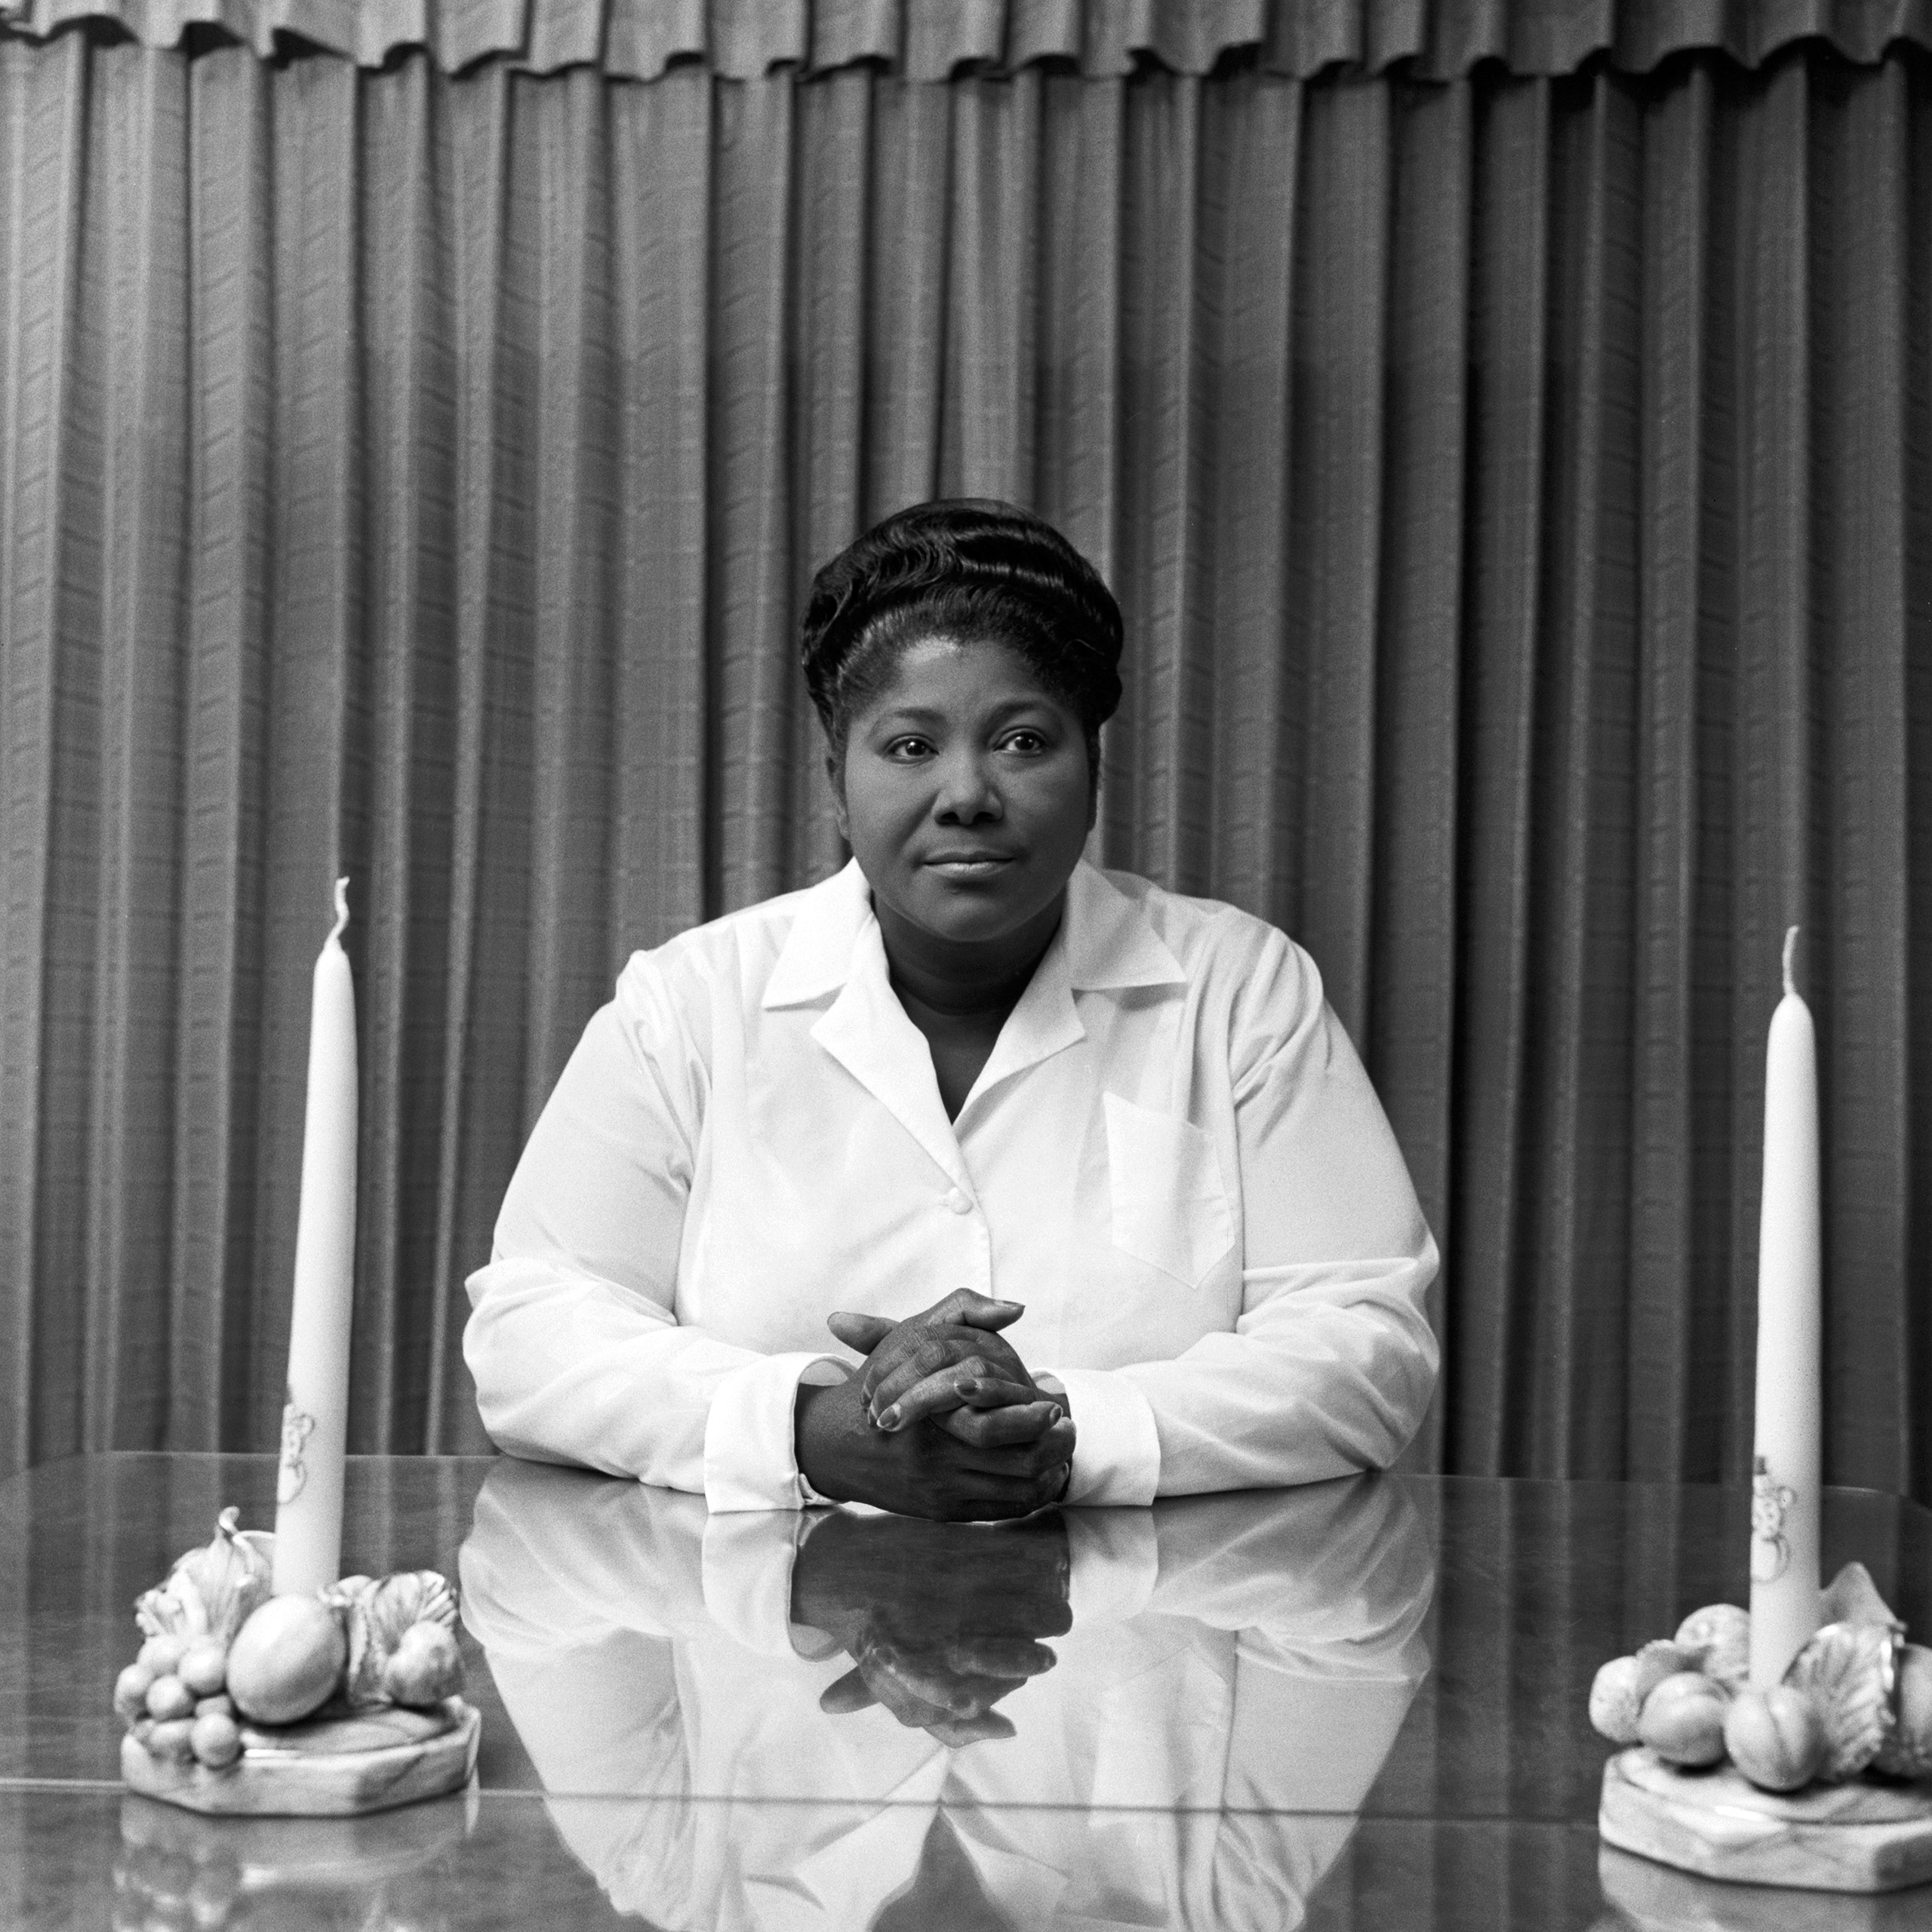 Portrait of American gospel singer Mahalia Jackson, often referred to as  The Queen of Gospel.  this photoshoot was commissioned by DownBeat magazine and the story was published on Dec. 11, 1958.